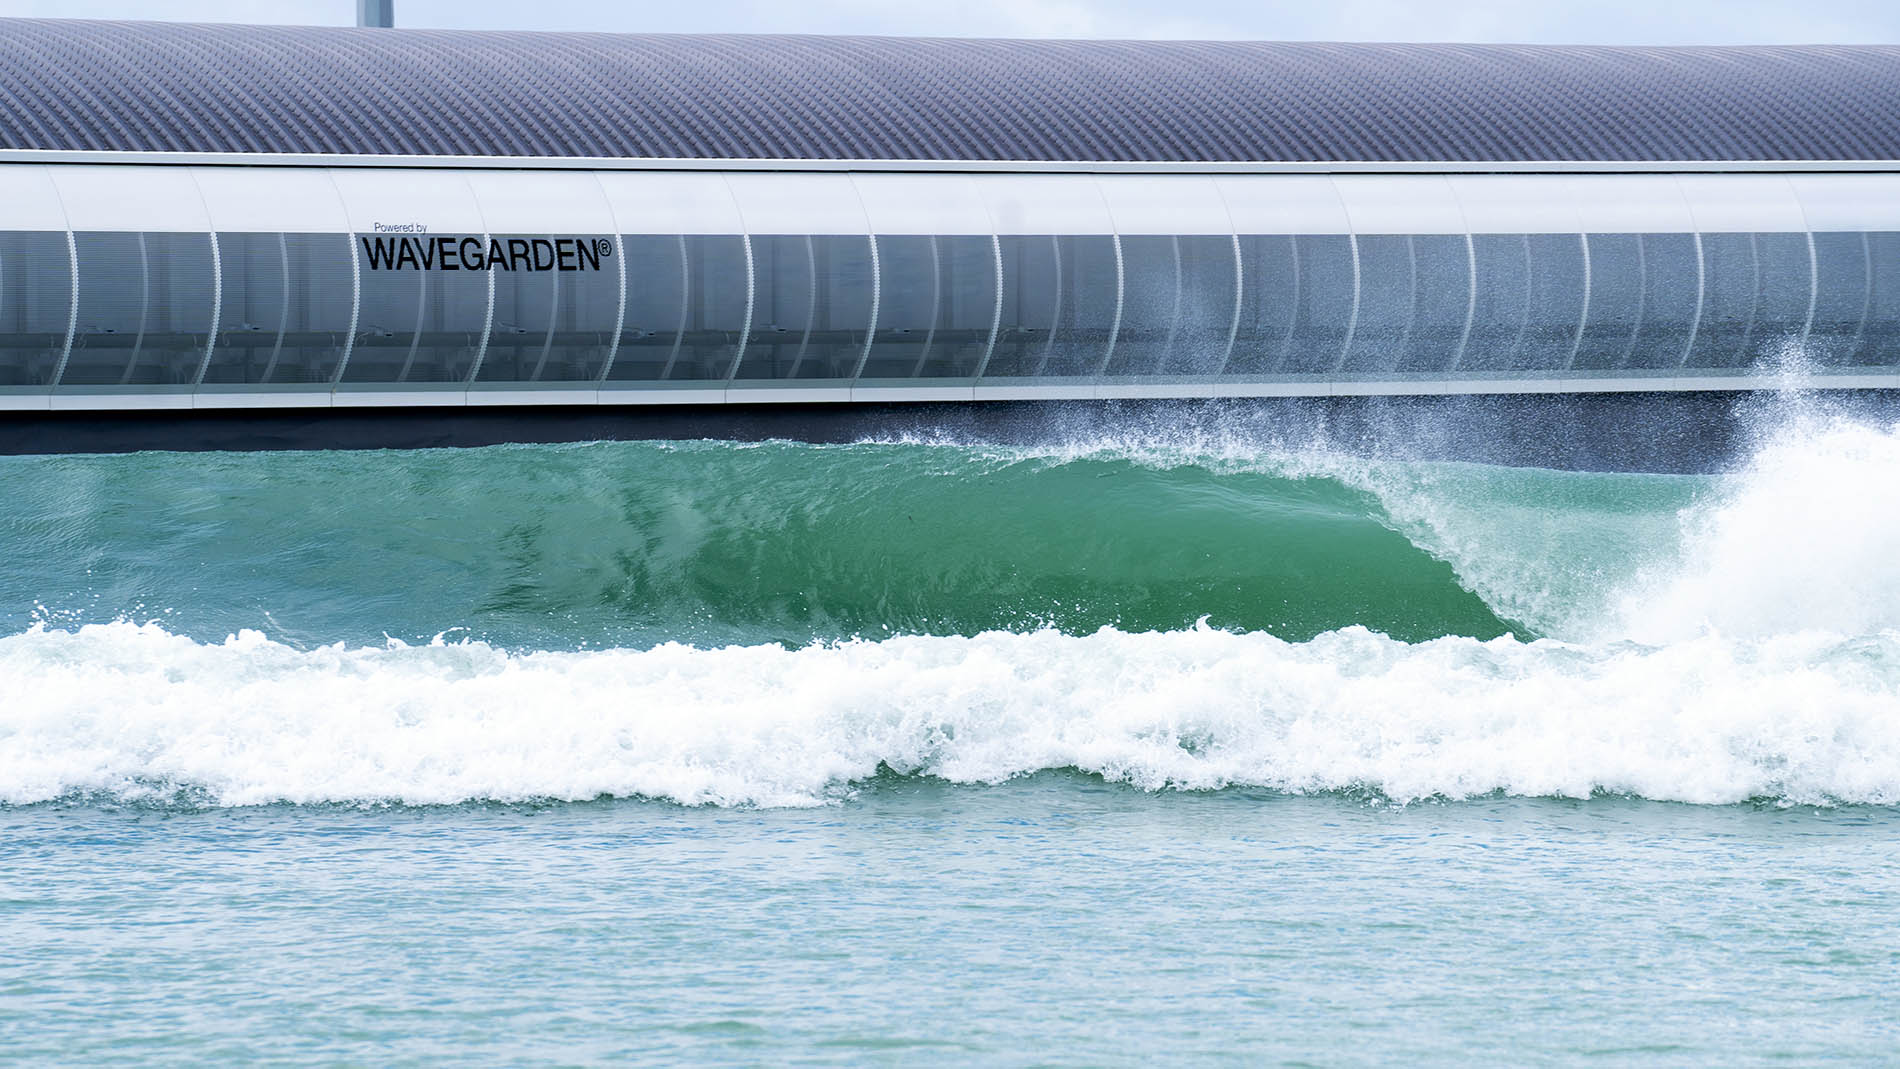 Wavegarden Test Tube